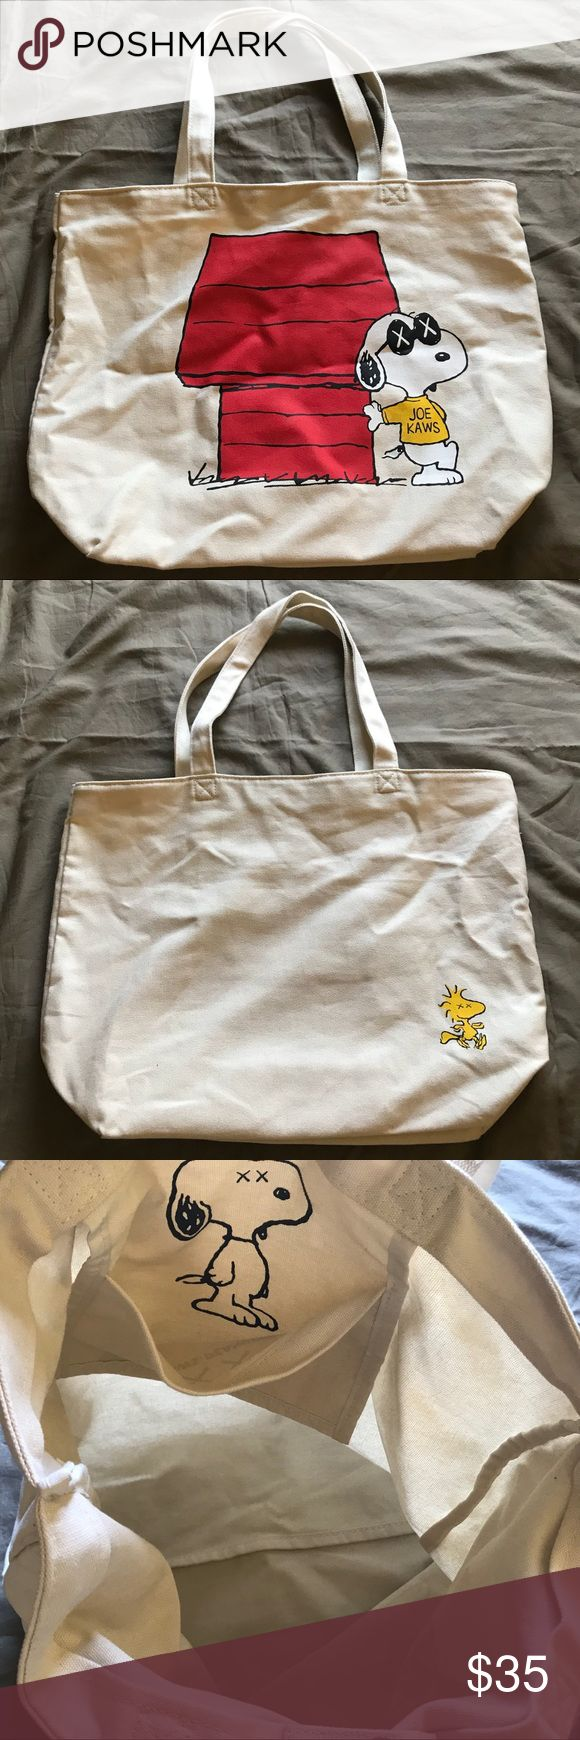 Uniqlo - Kaws x Peanuts Collaboration Tote Bag Kaws x Peanuts Collaboration Tote Bag // Size: OS // Used once, but does not have any kind of flaws! Still in perfect condition. This item quickly sold out from Uniqlo when the collection dropped! Can easily fit textbooks, a laptop, etc. Uniqlo x KAWS Bags Totes